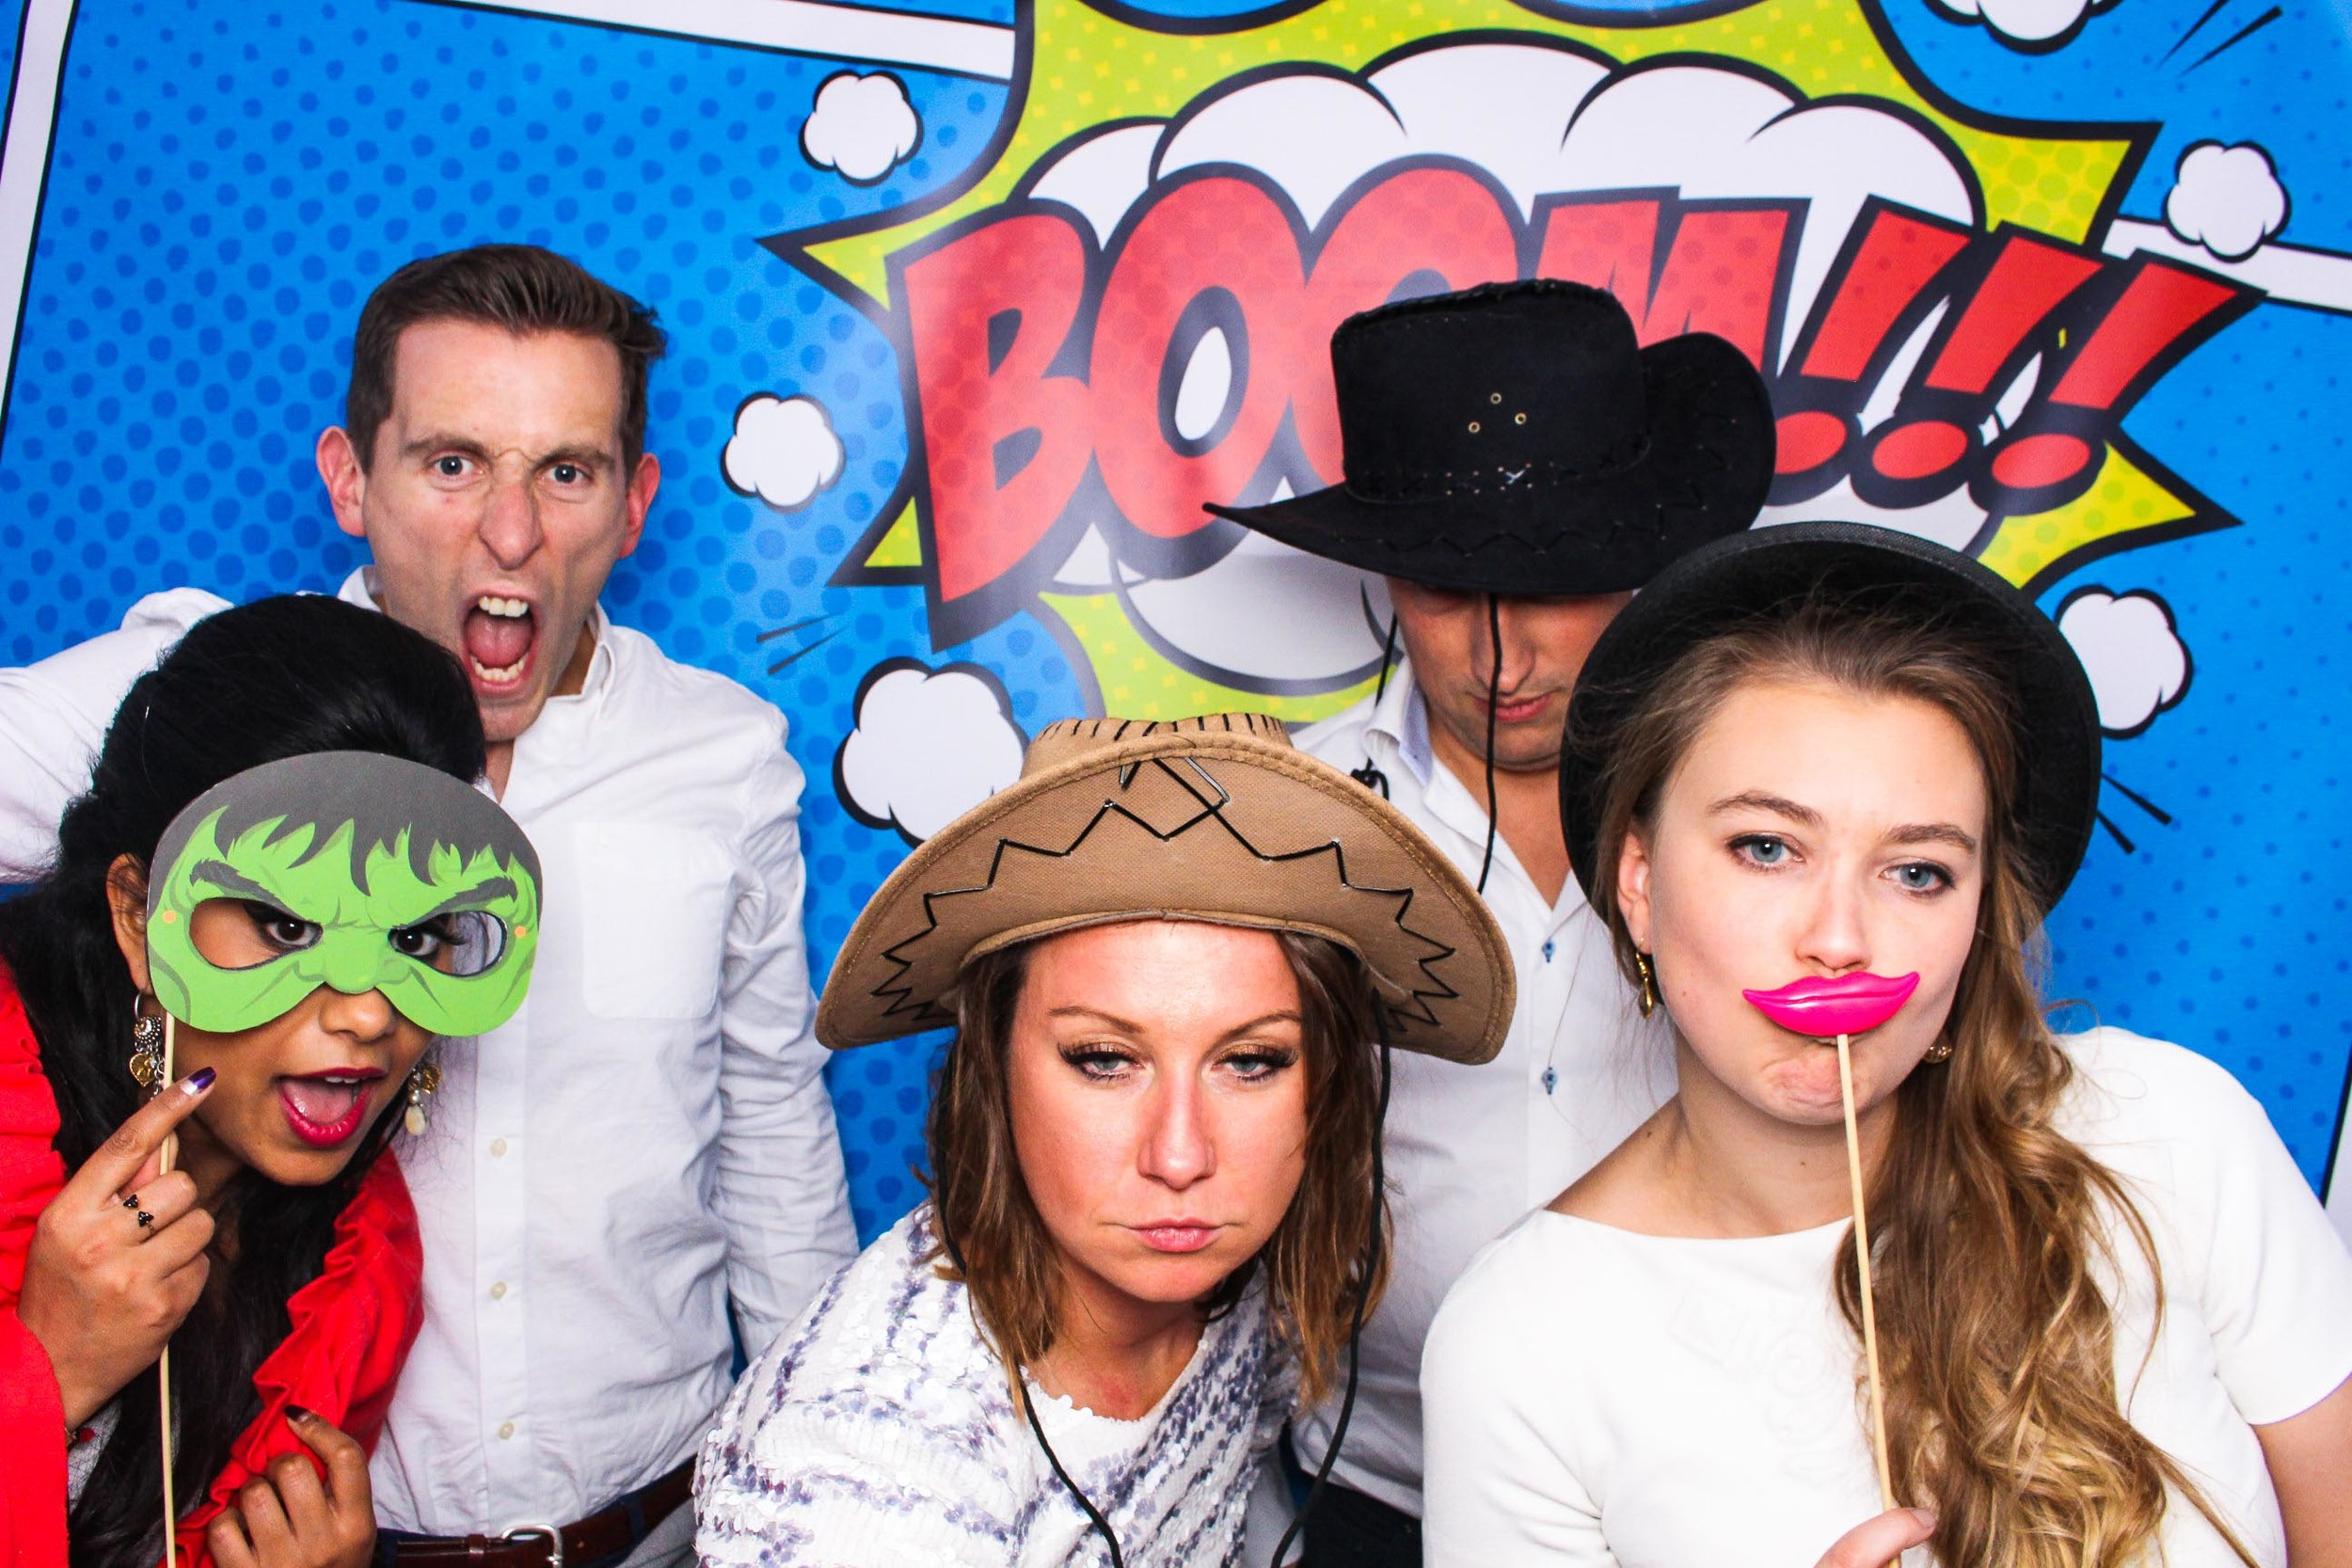 Fotoauto Photo Booth Hire - Shop Direct-278.jpg